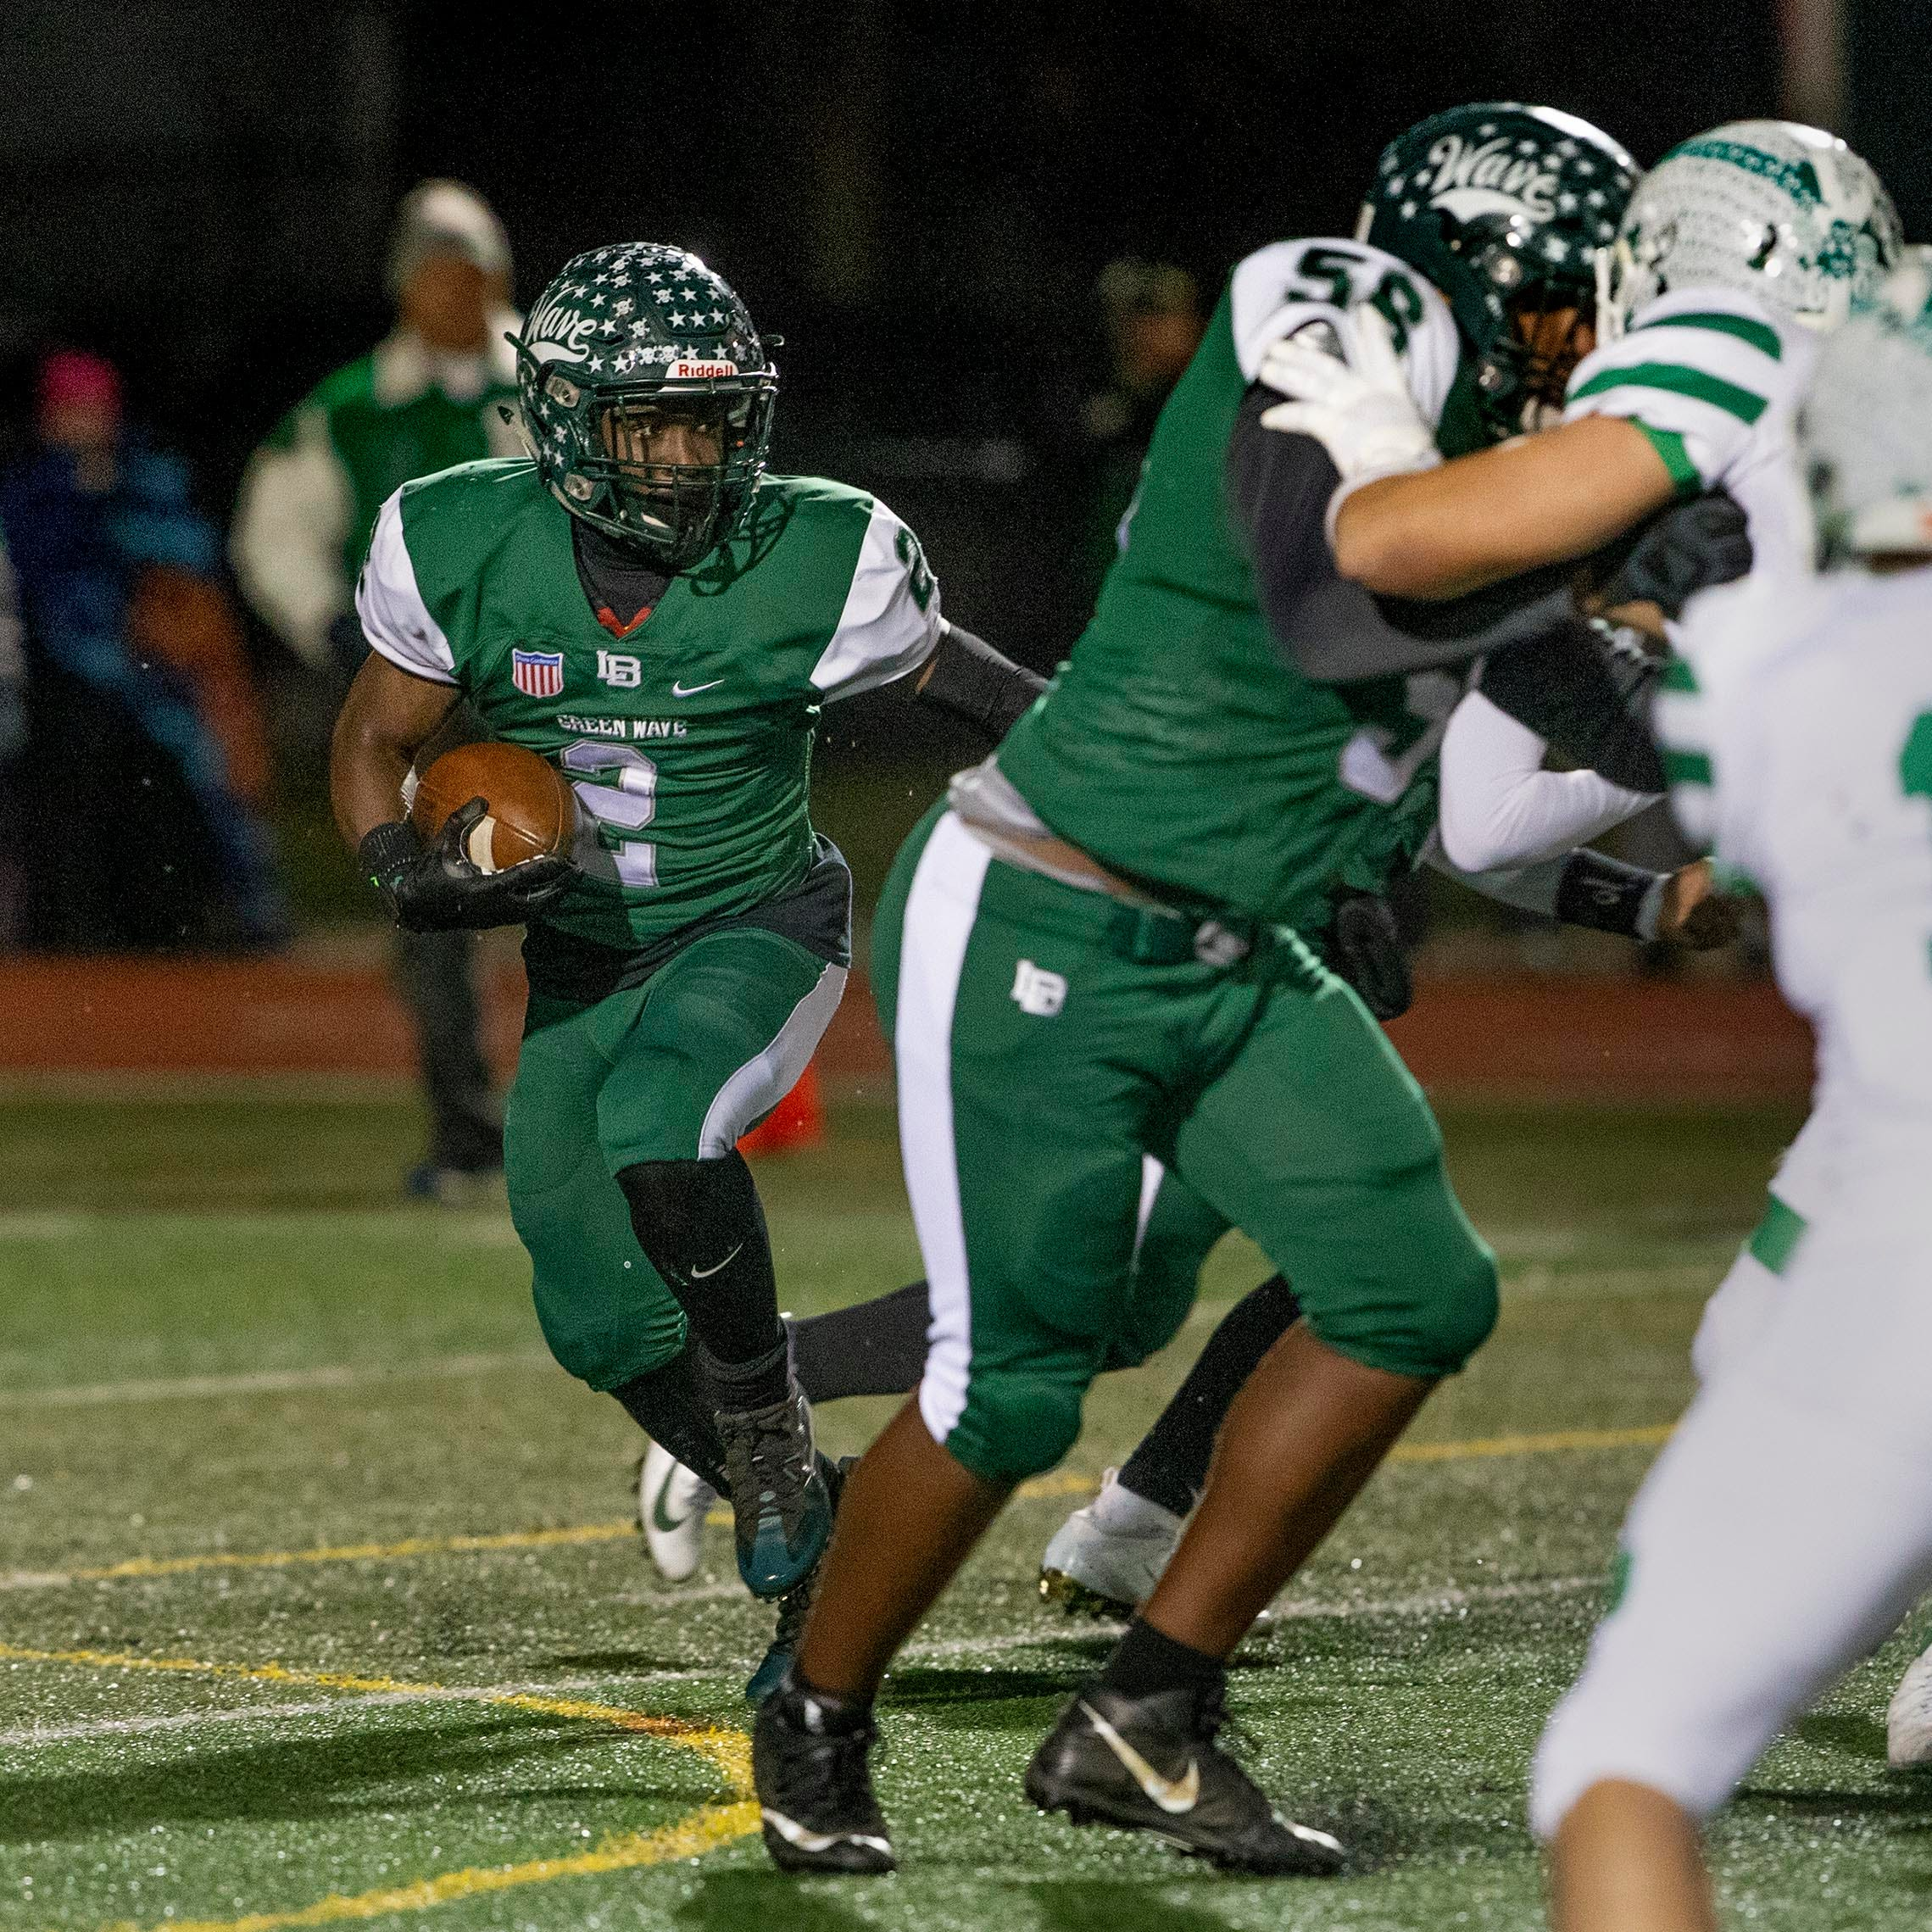 NJ football playoffs: Back-to-back championships signals Golden Era for Long Branch